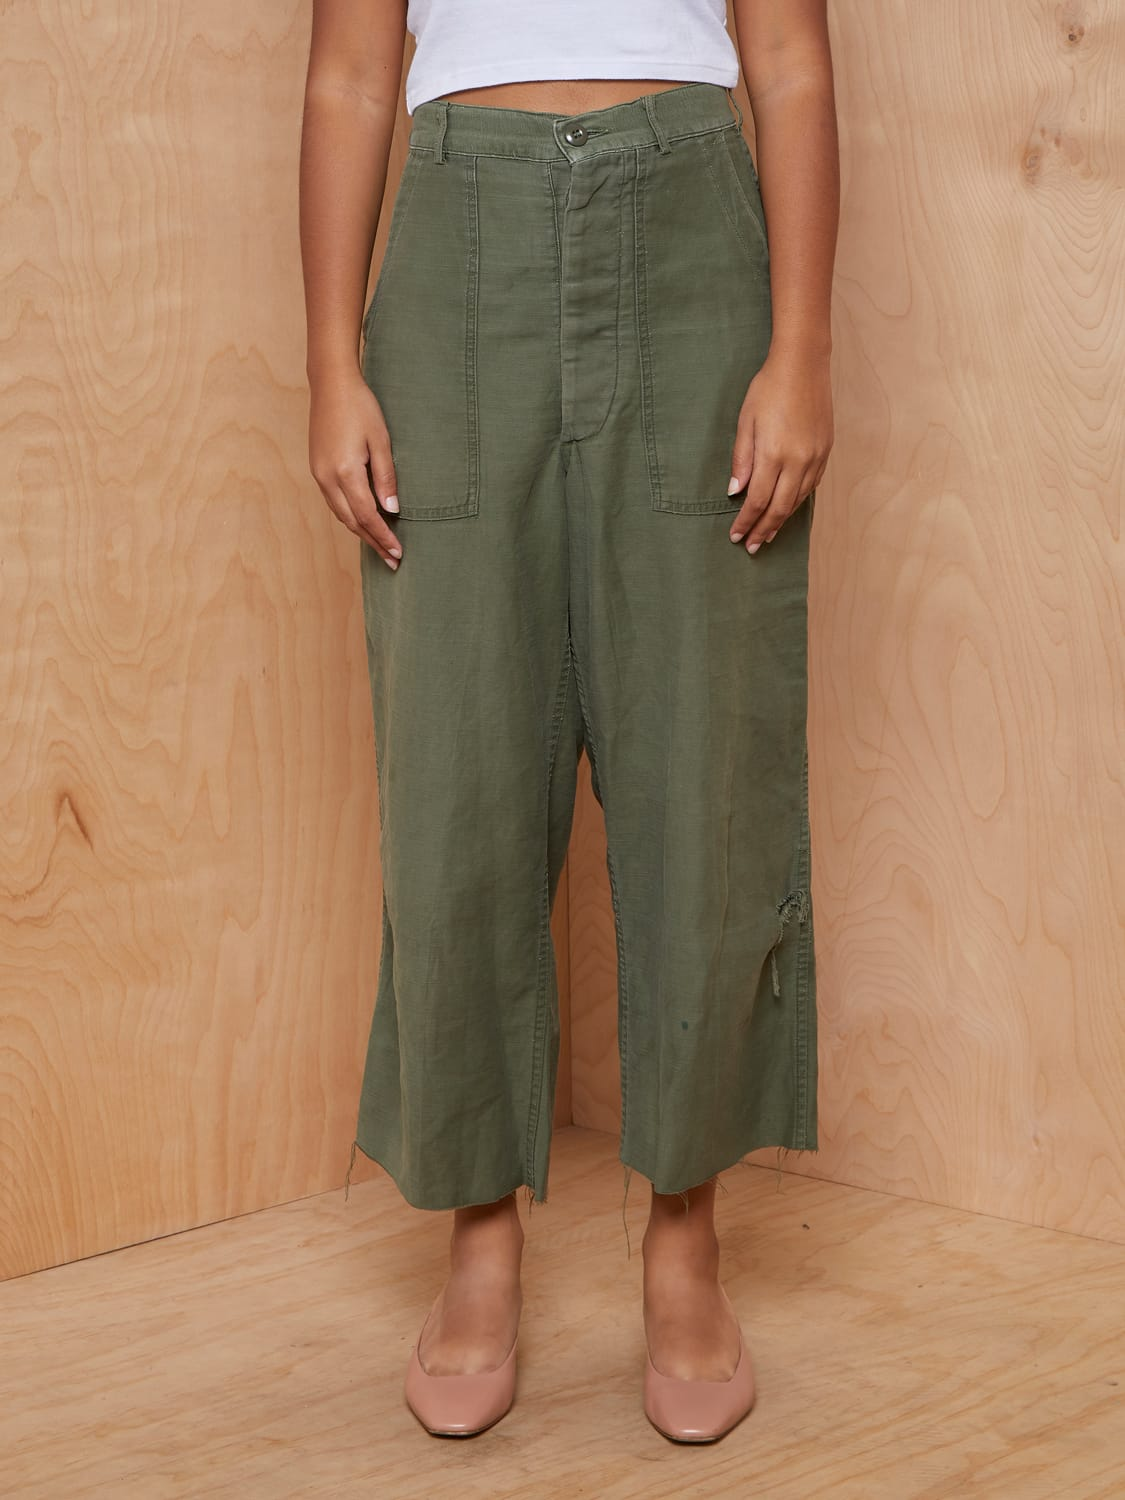 Vintage Moss Green Army Pants